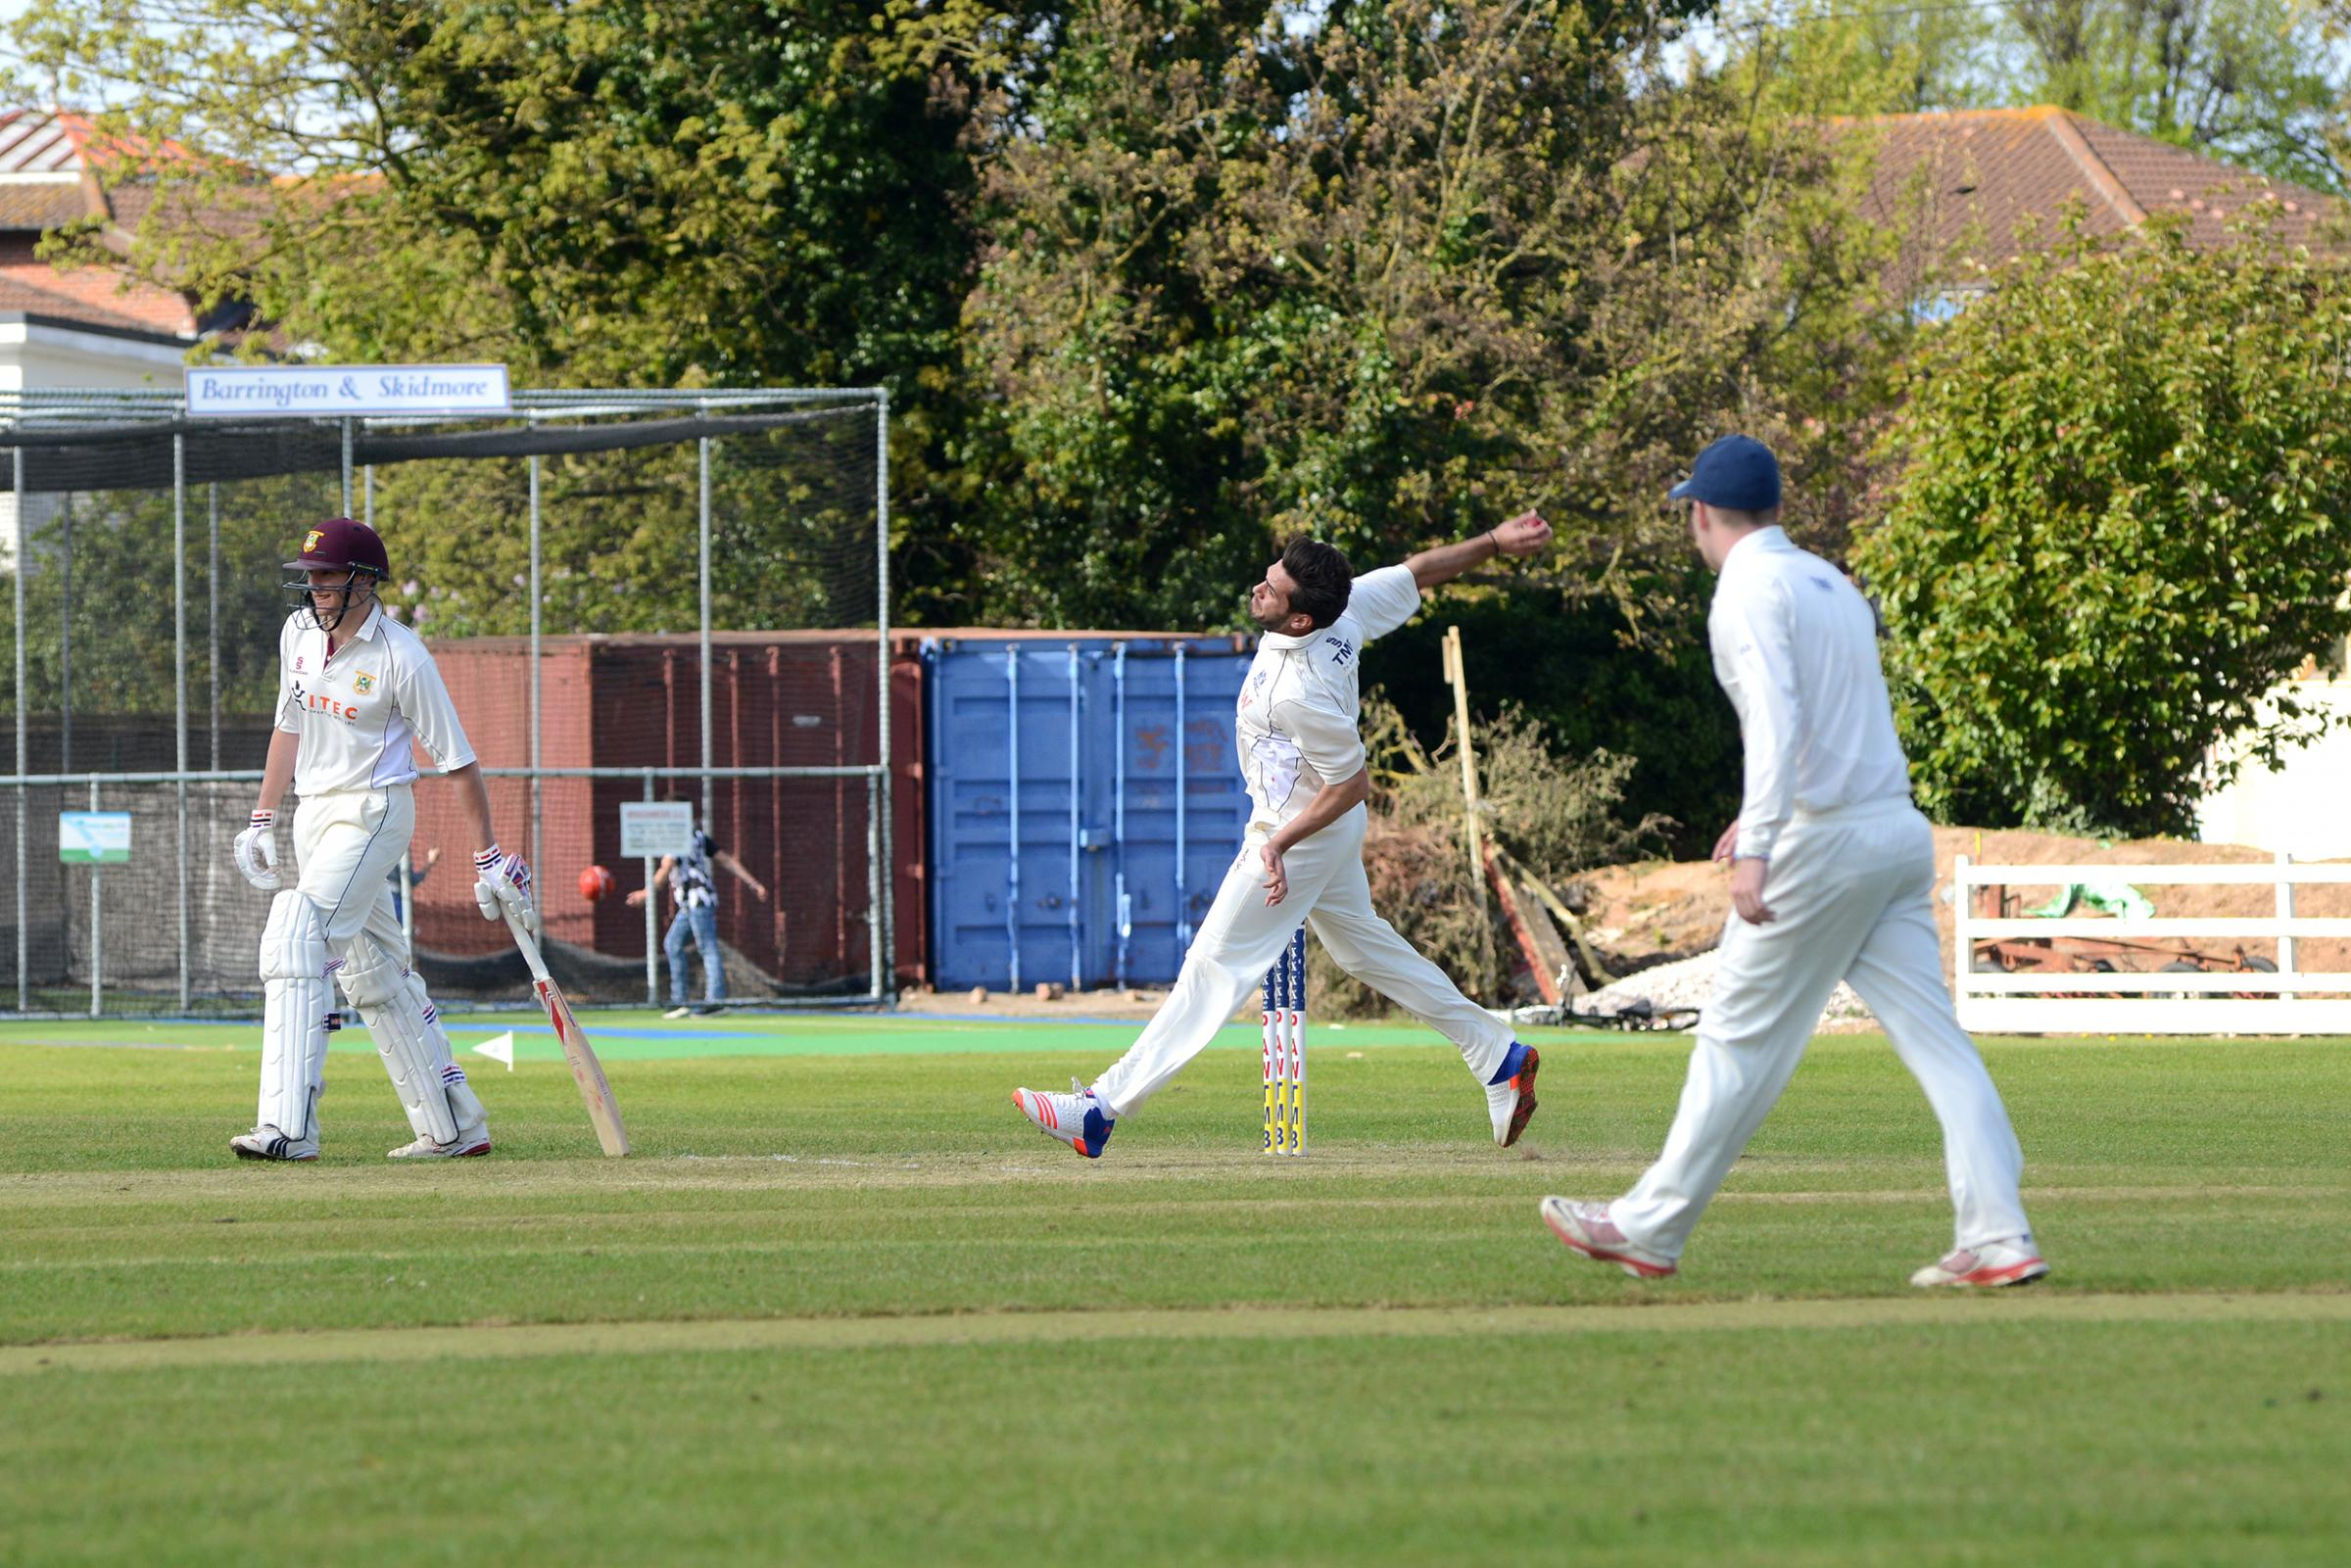 MATCH-WINNER: Chris Skidmore (above, bowling) was the hero with the bat for Bridgwater on Saturday.